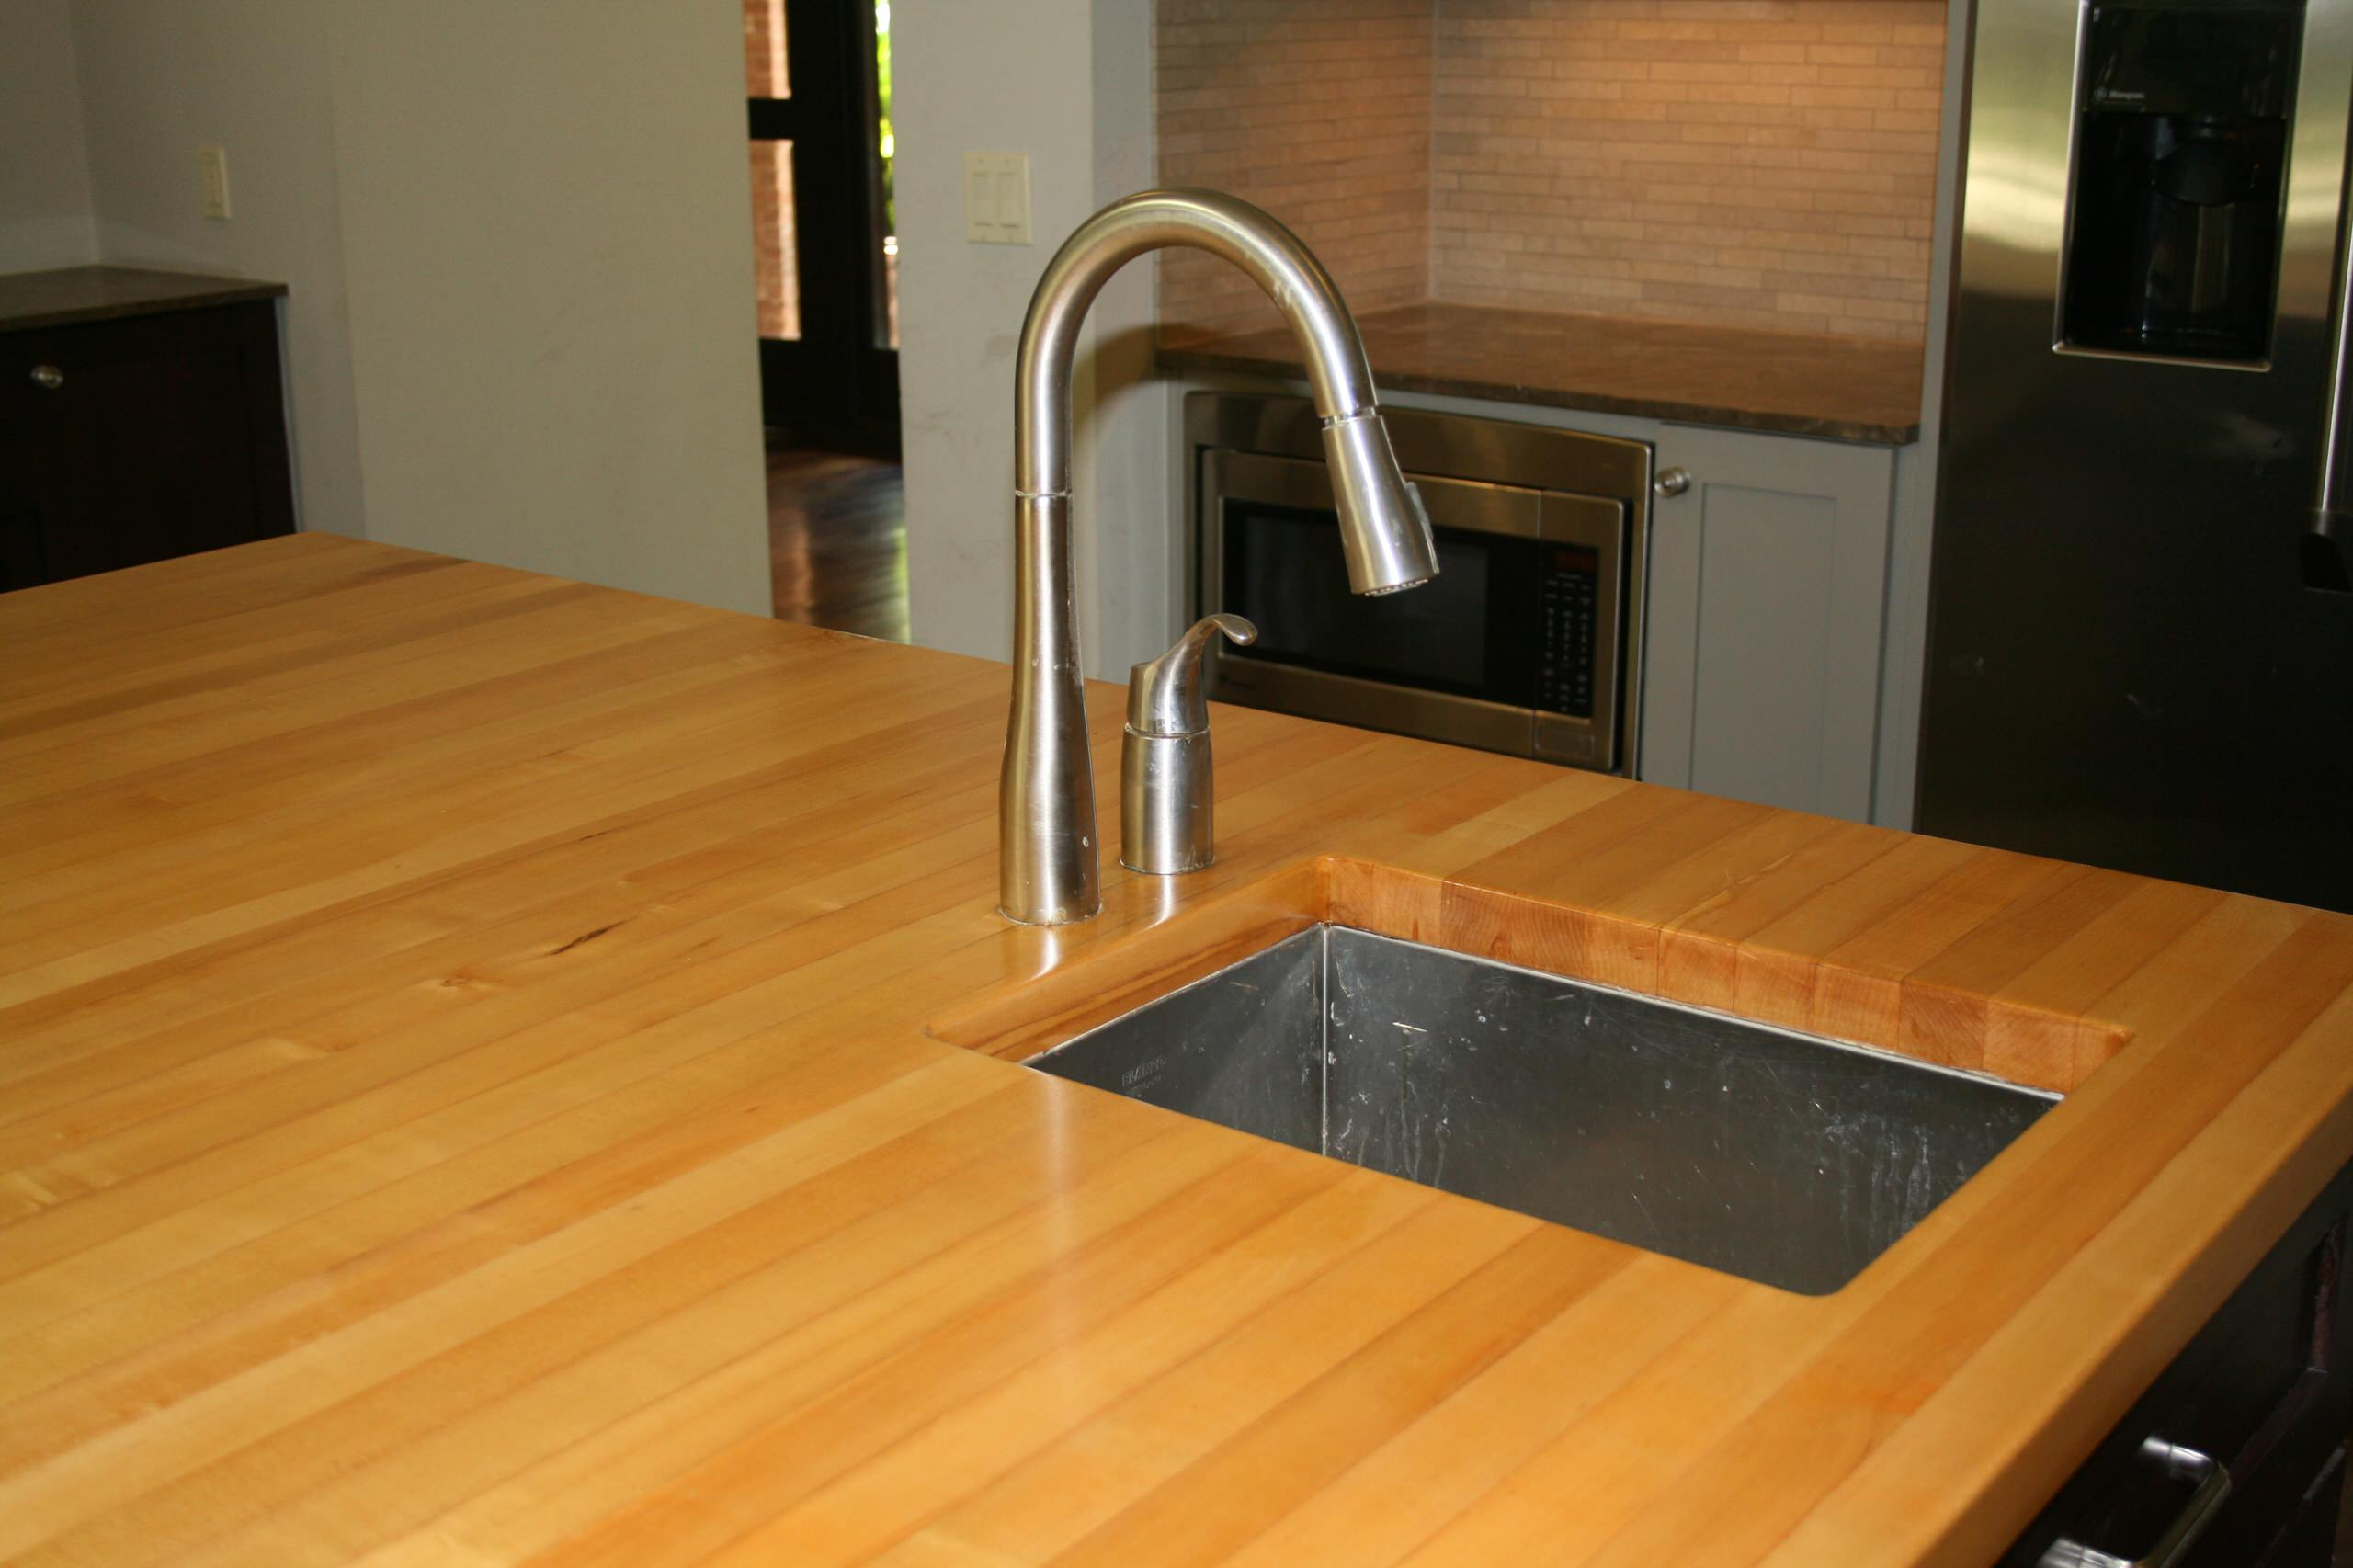 Maple Center Island w/ undermount sink